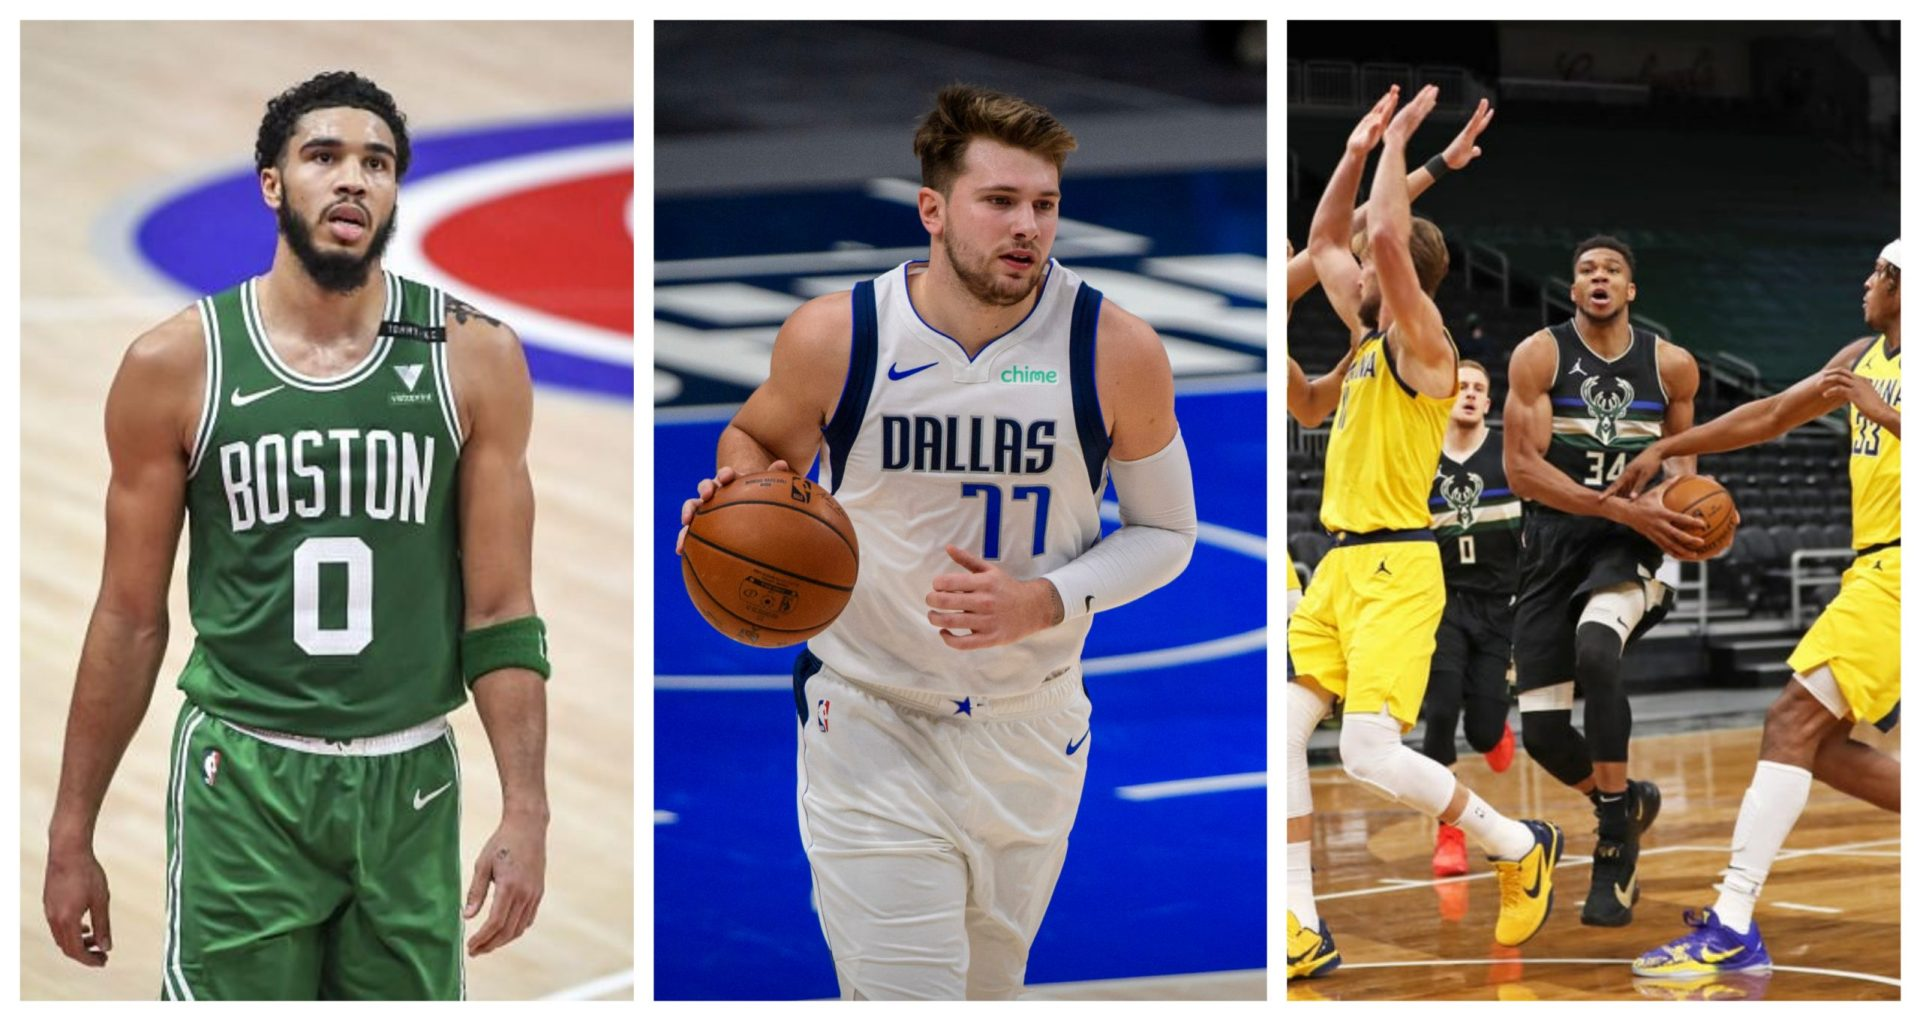 NBA Week 7 Feb 3 results: Scores, standings, match summary and highlights - THE SPORTS ROOM